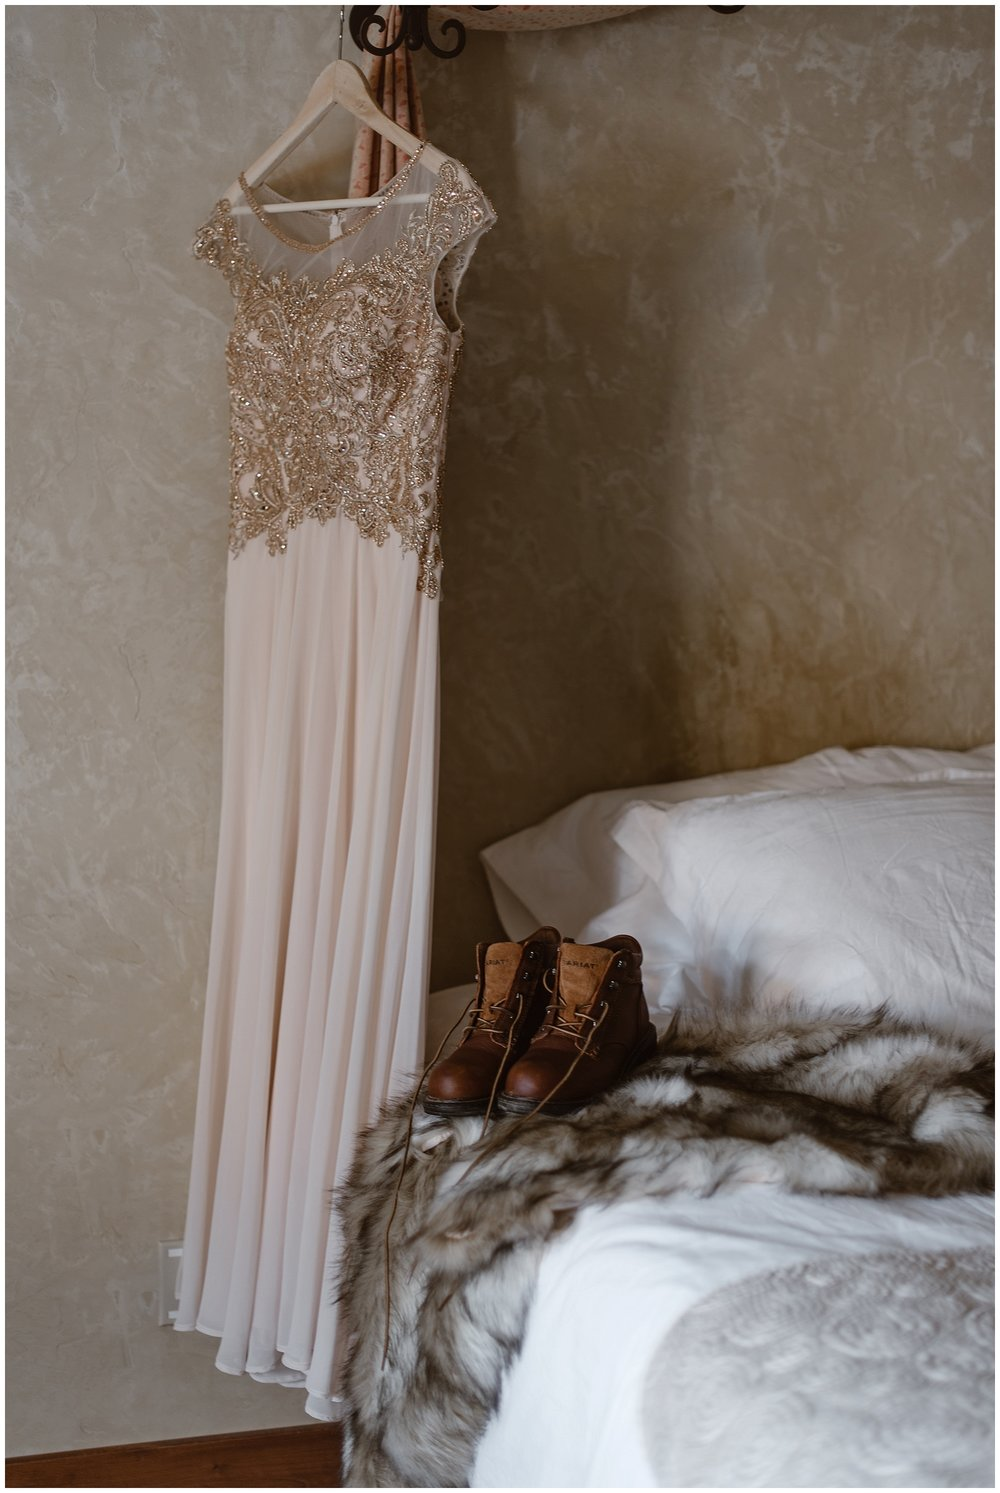 Marlayna's wedding gown hangs in Georgetown, Colorado while her boots and fur lay on the bed before her winter elopement ceremony. Photo by Adventure Instead, Maddie Mae Elopement Photographers.